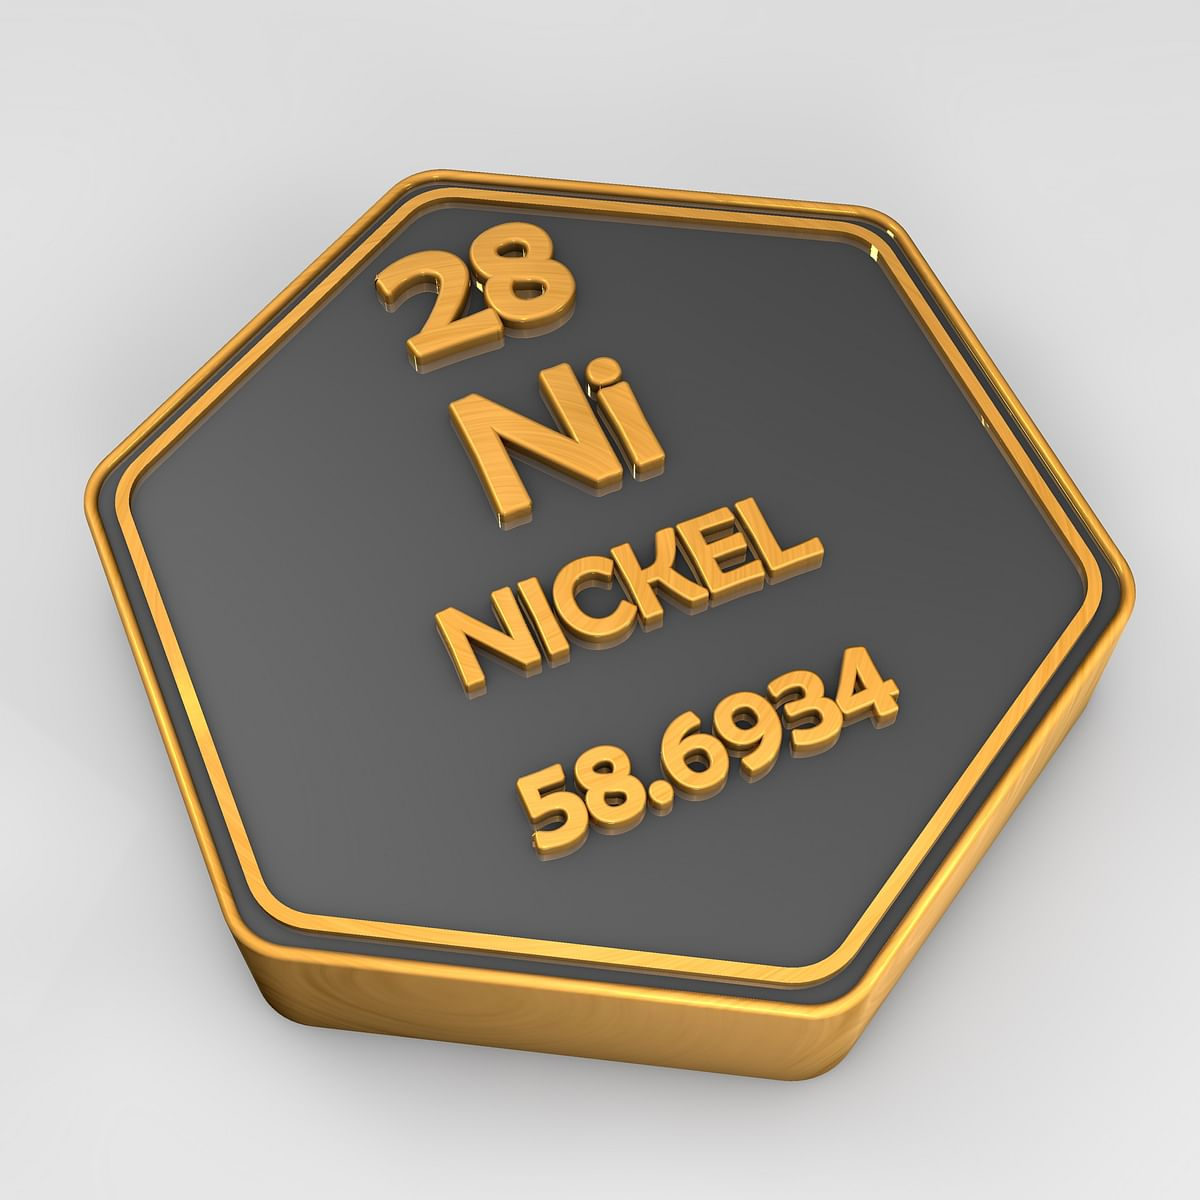 Global Nickel Production to Recover by 7% in 2021